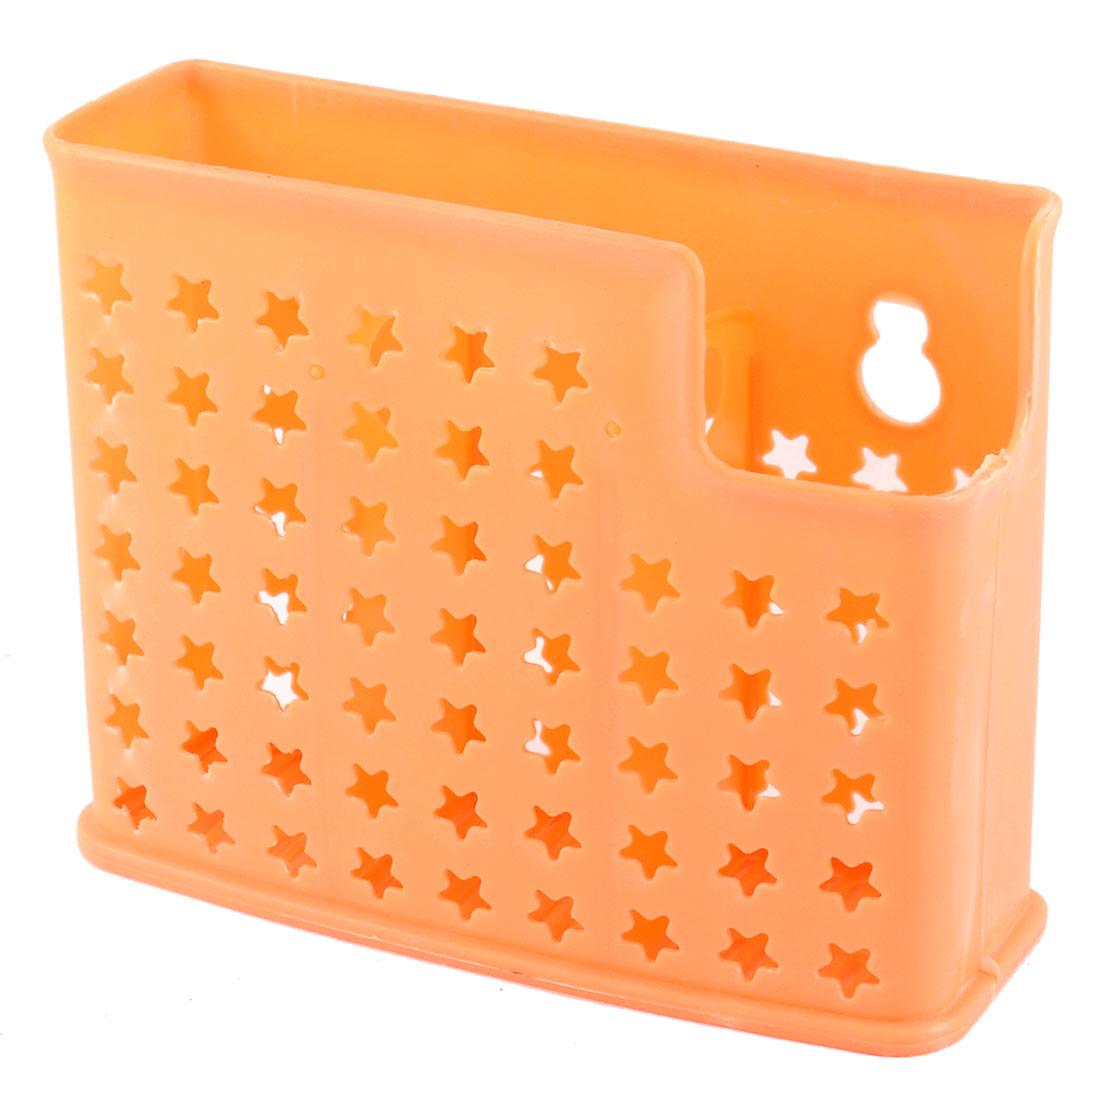 Home Kitchen Hollow Star Plastic 3 Compartments Chopsticks Box Case Organizer Holder Yellow